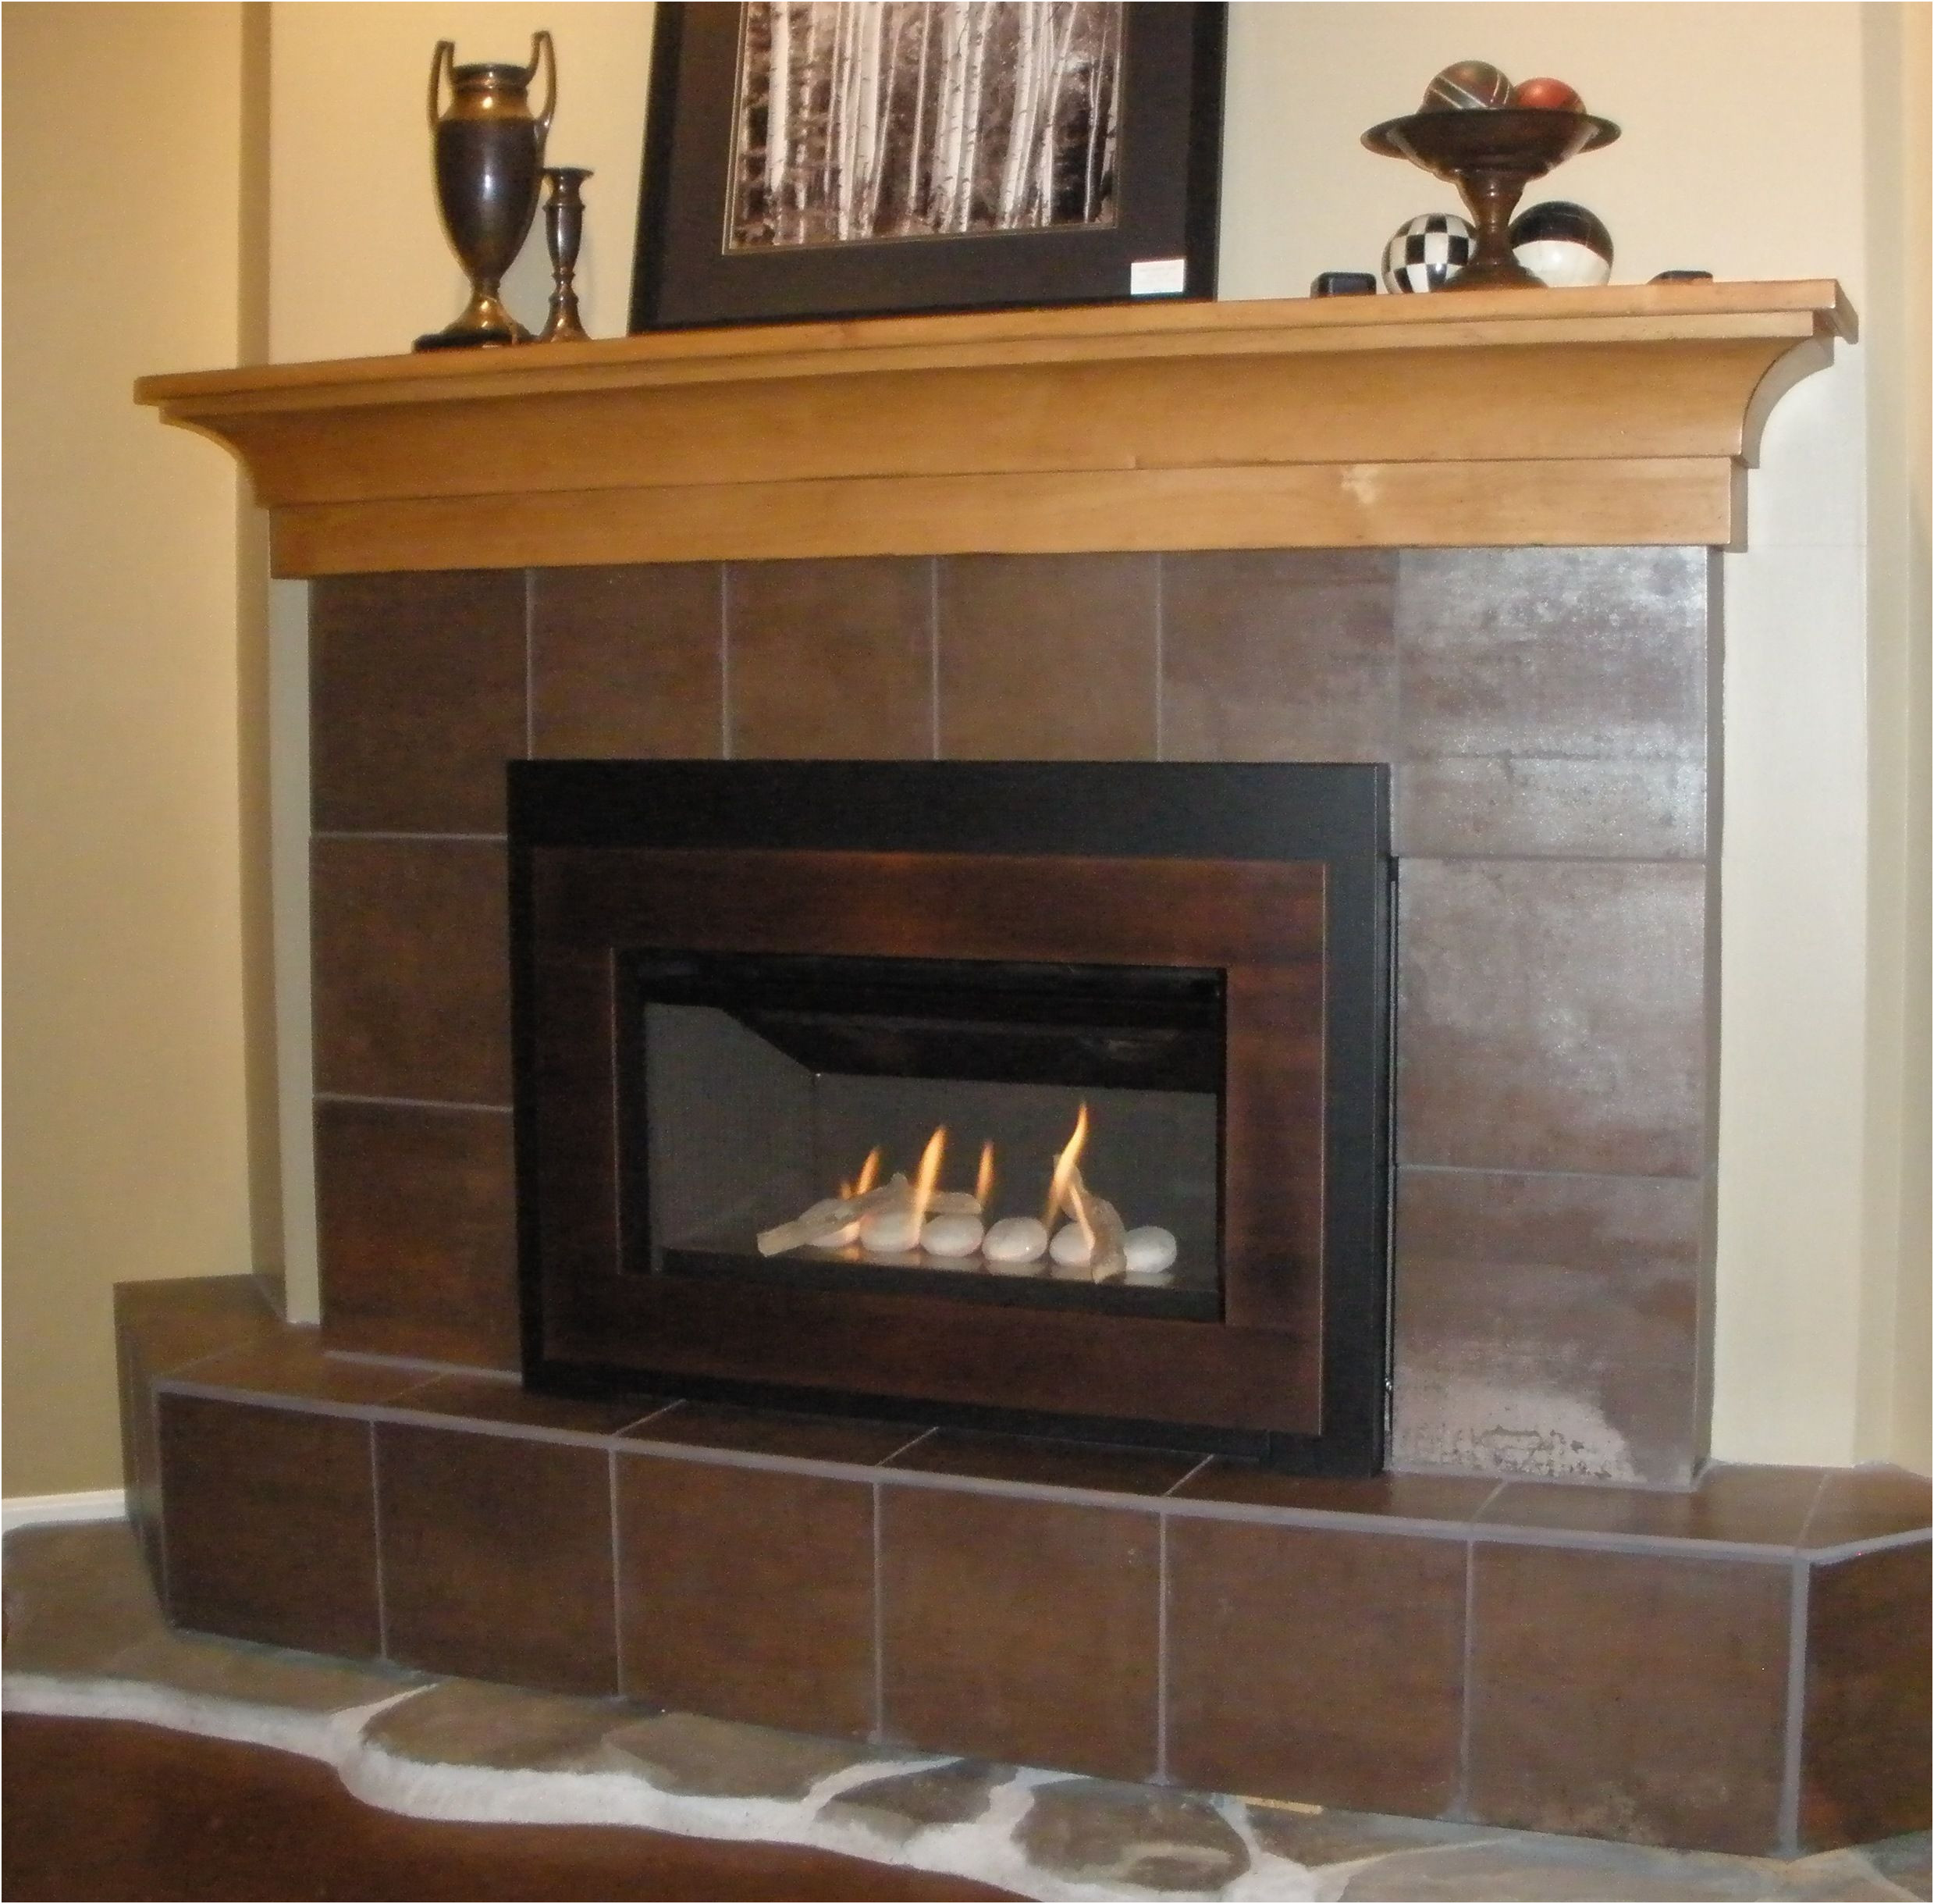 Fresh Gas Fireplace Idea